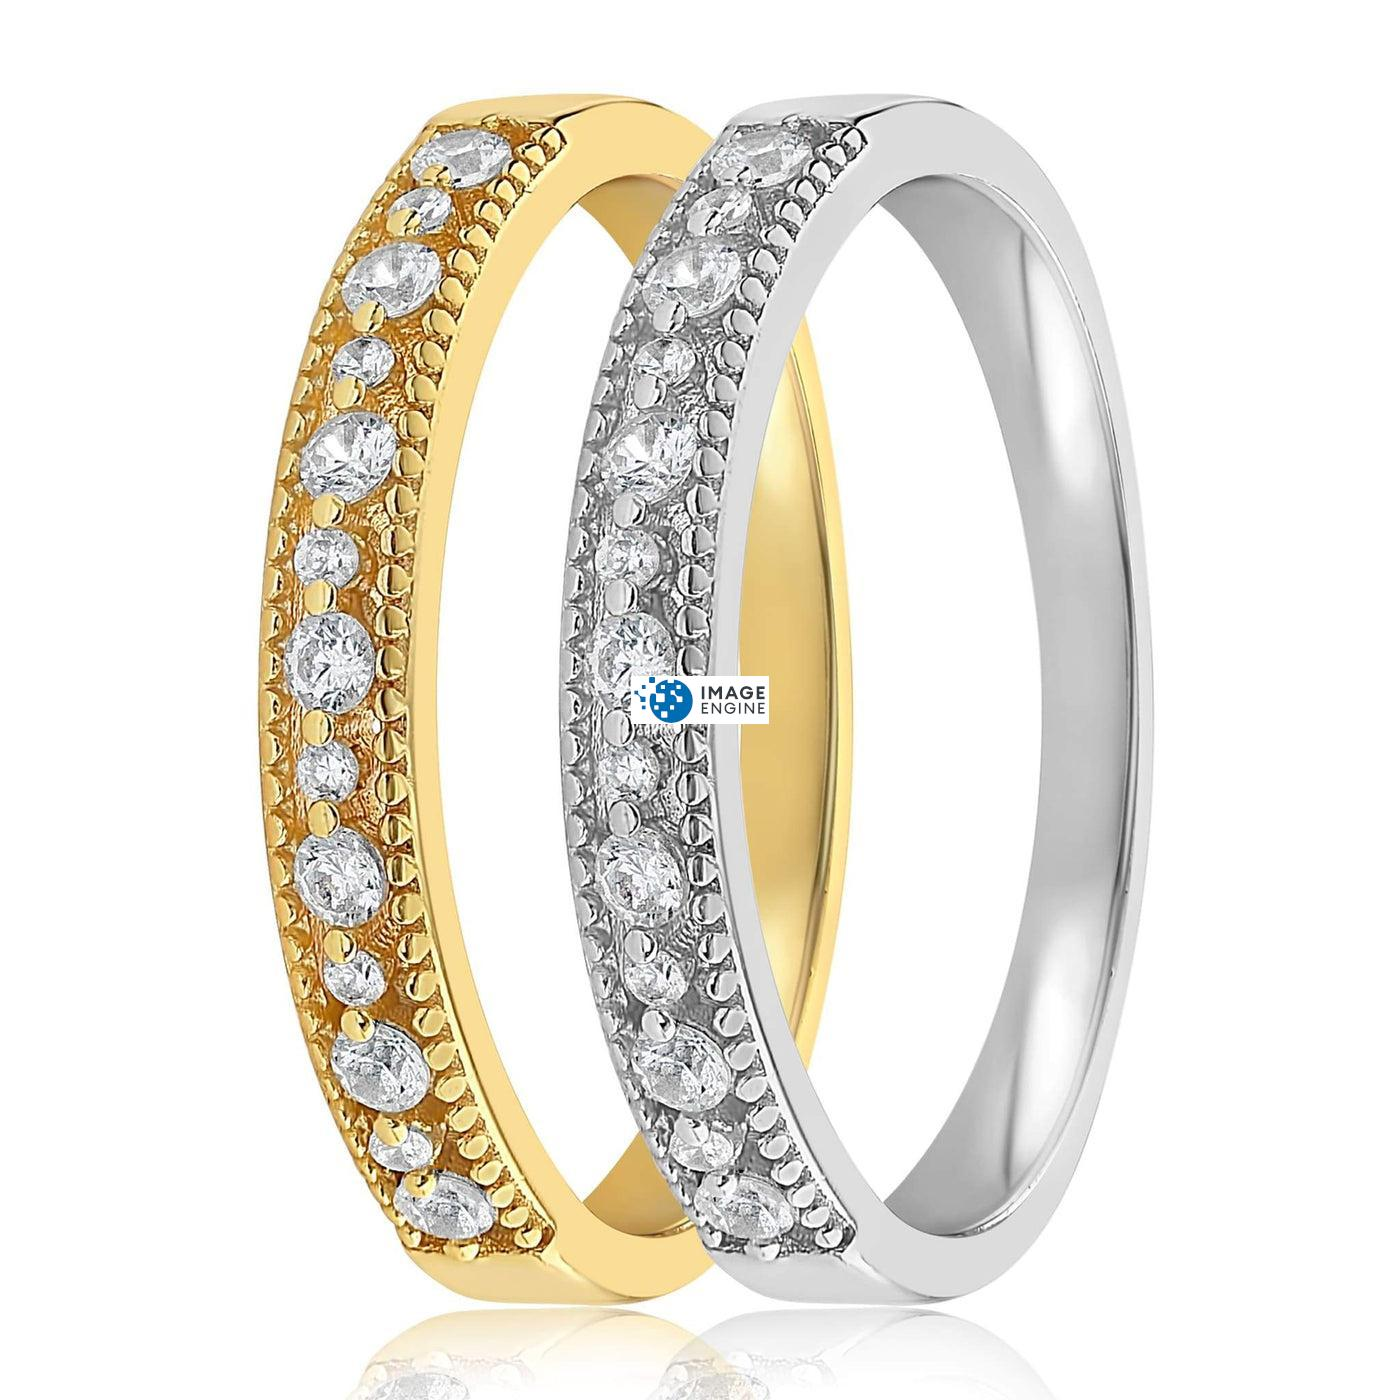 Joyce Layered Stack Ring - Side by Side - 18K Yellow Gold and 925 Sterling Silver